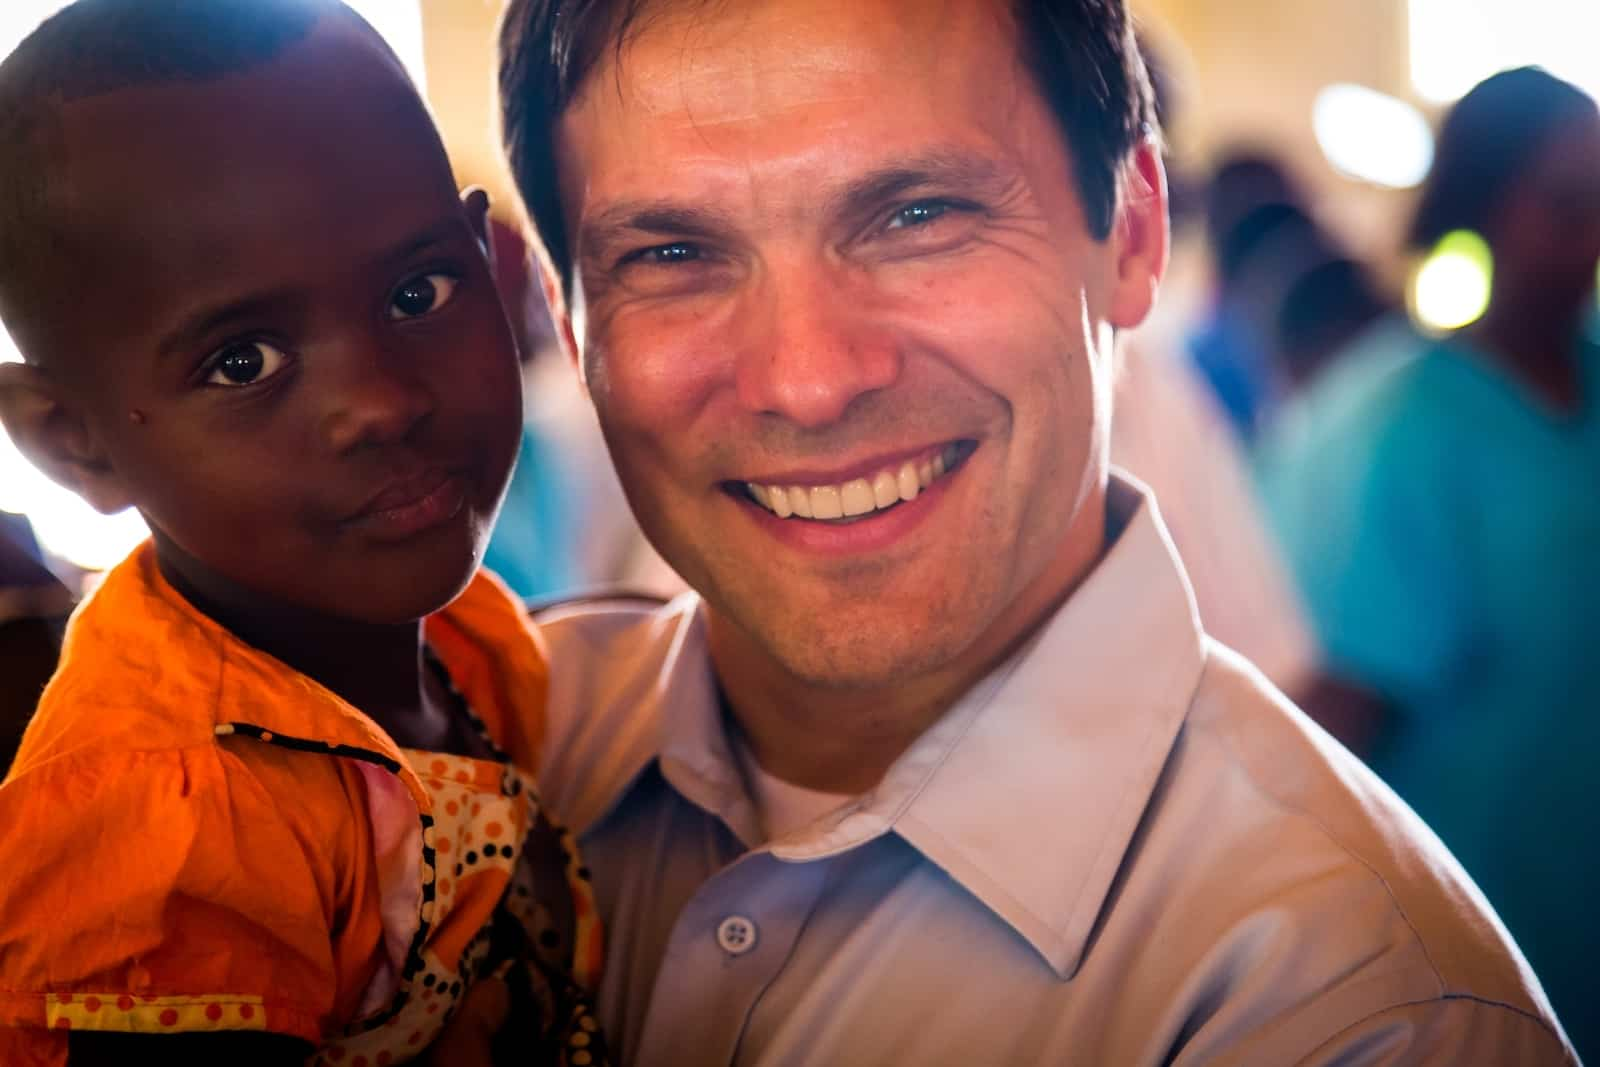 An Easter Message of hope form our President, pictured smiling and holding a young Rwandan girl wearing an orange dress.